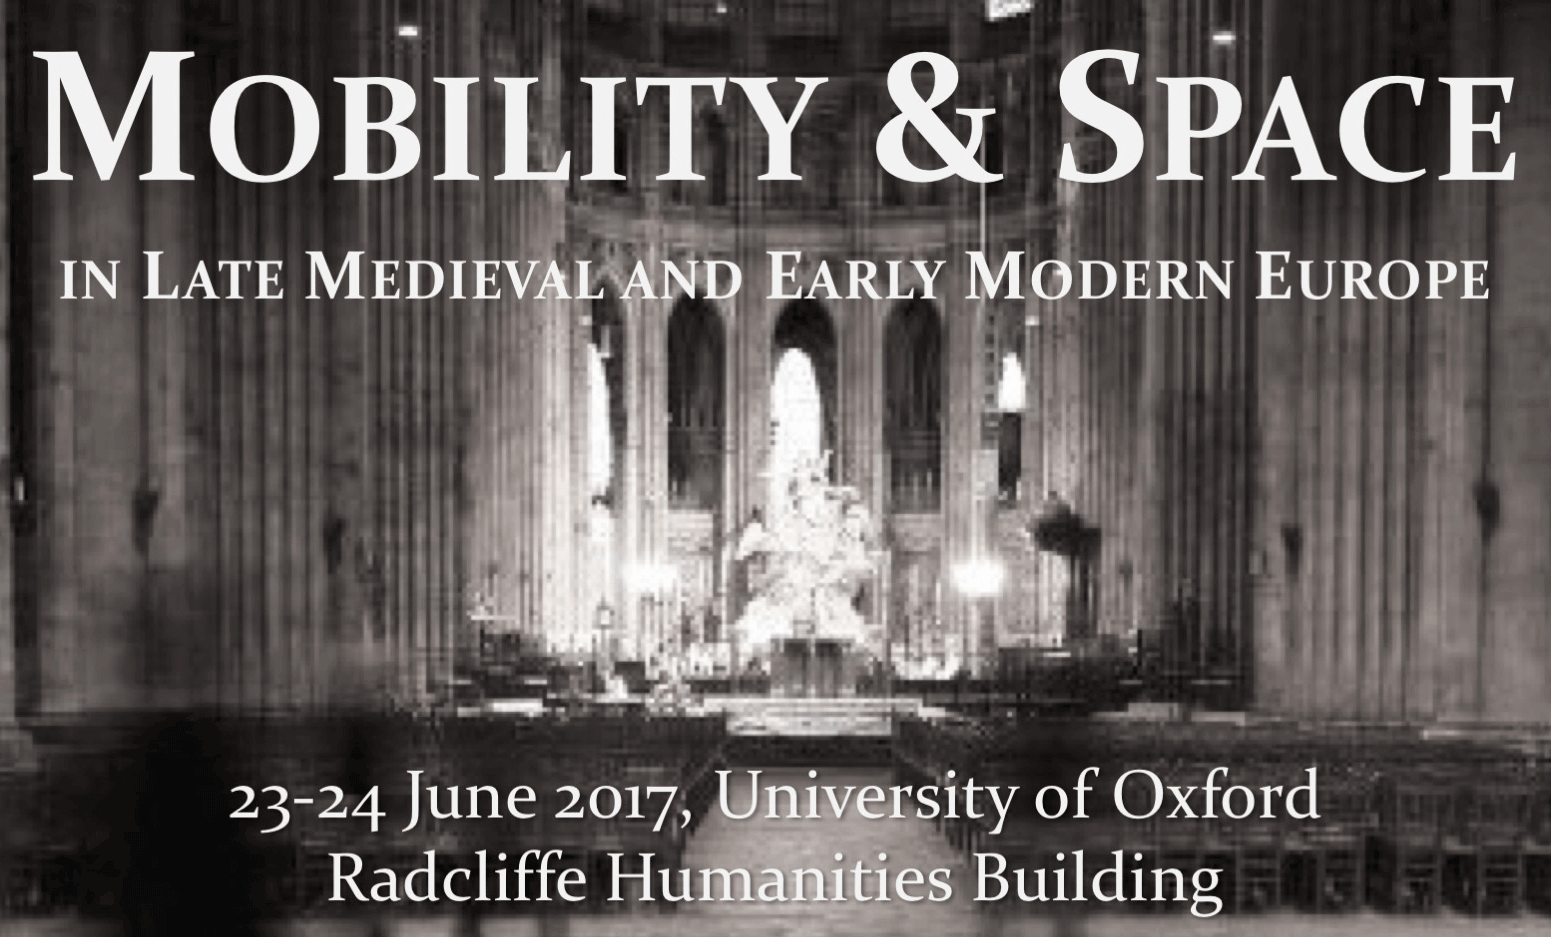 Mobility and Space in Late Medieval and Early Modern Europe